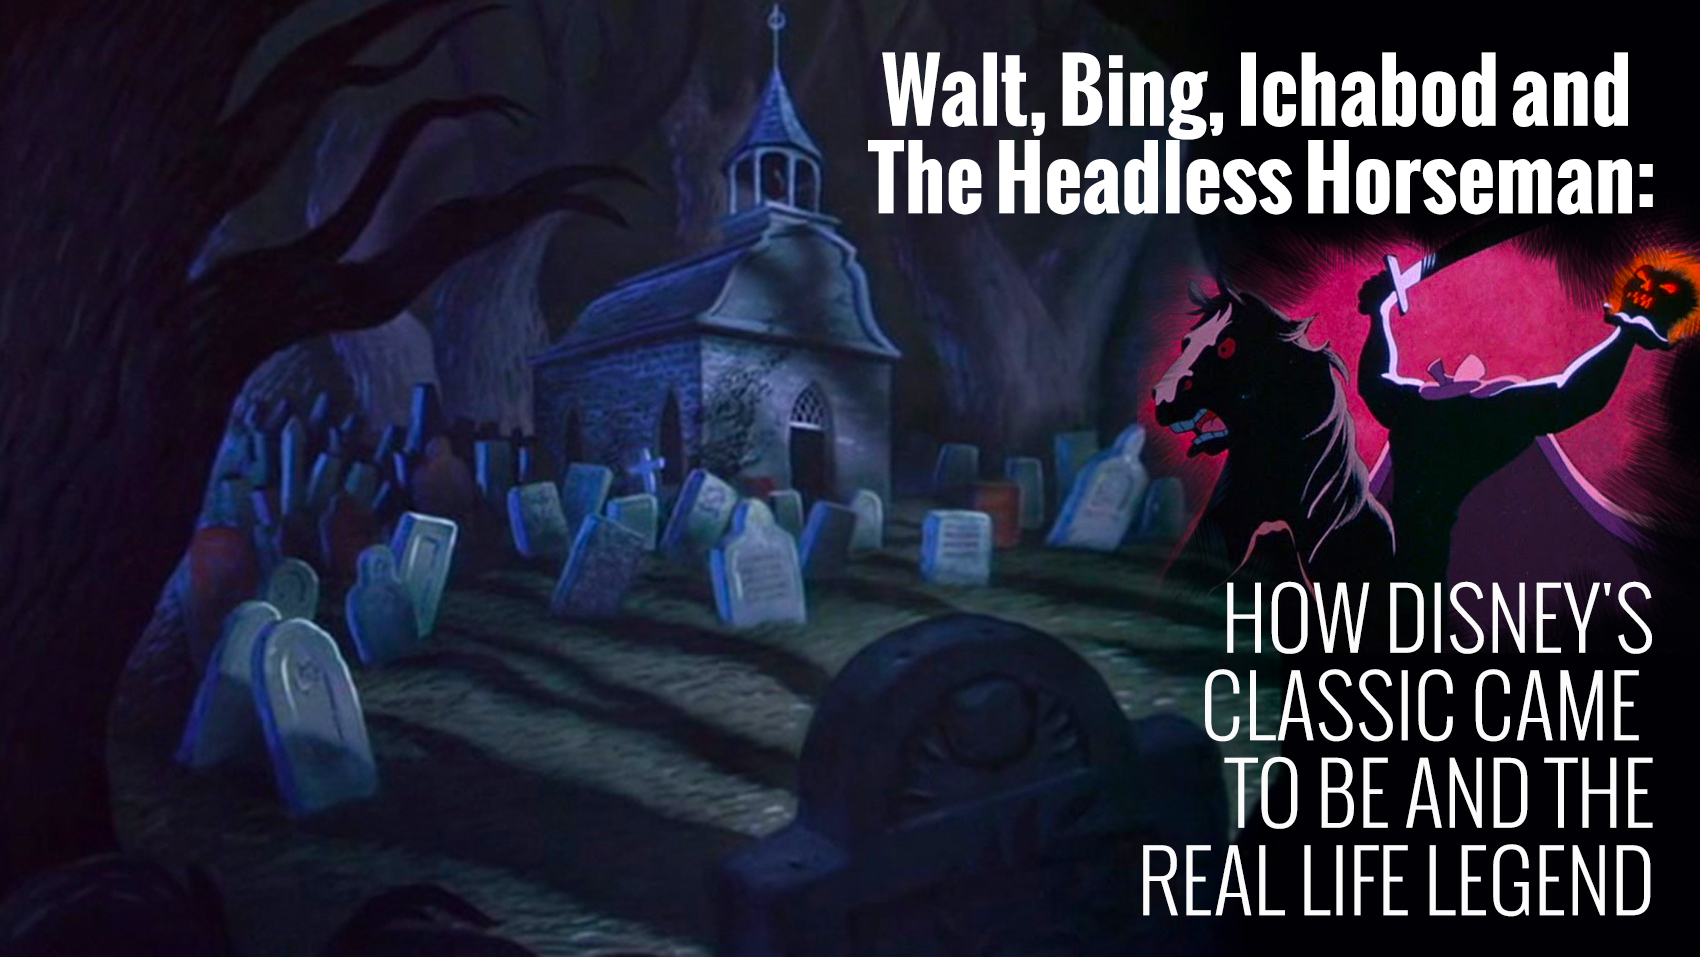 Walt, Bing, Ichabod and the Headless Horseman: How Disney's Classic Came to Be and the Real Life Legend